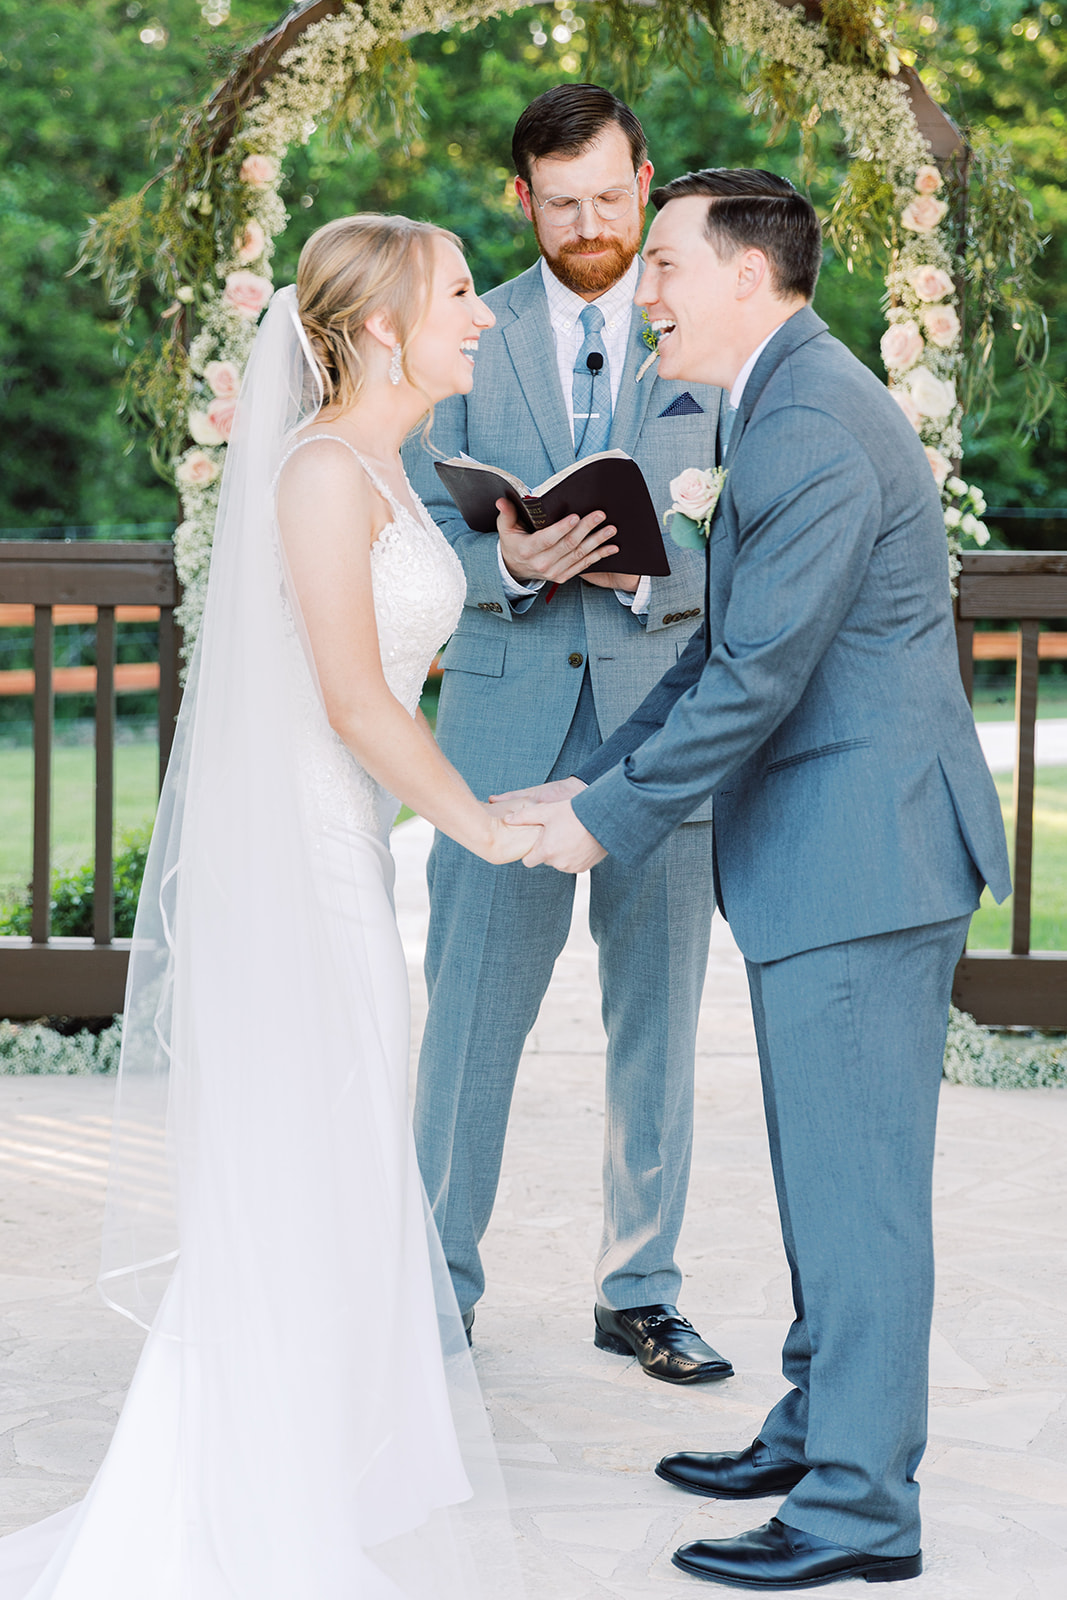 Creative wedding photo ideas: | Romantic blue Texas wedding at Spring Venue by Alexa Kay Events